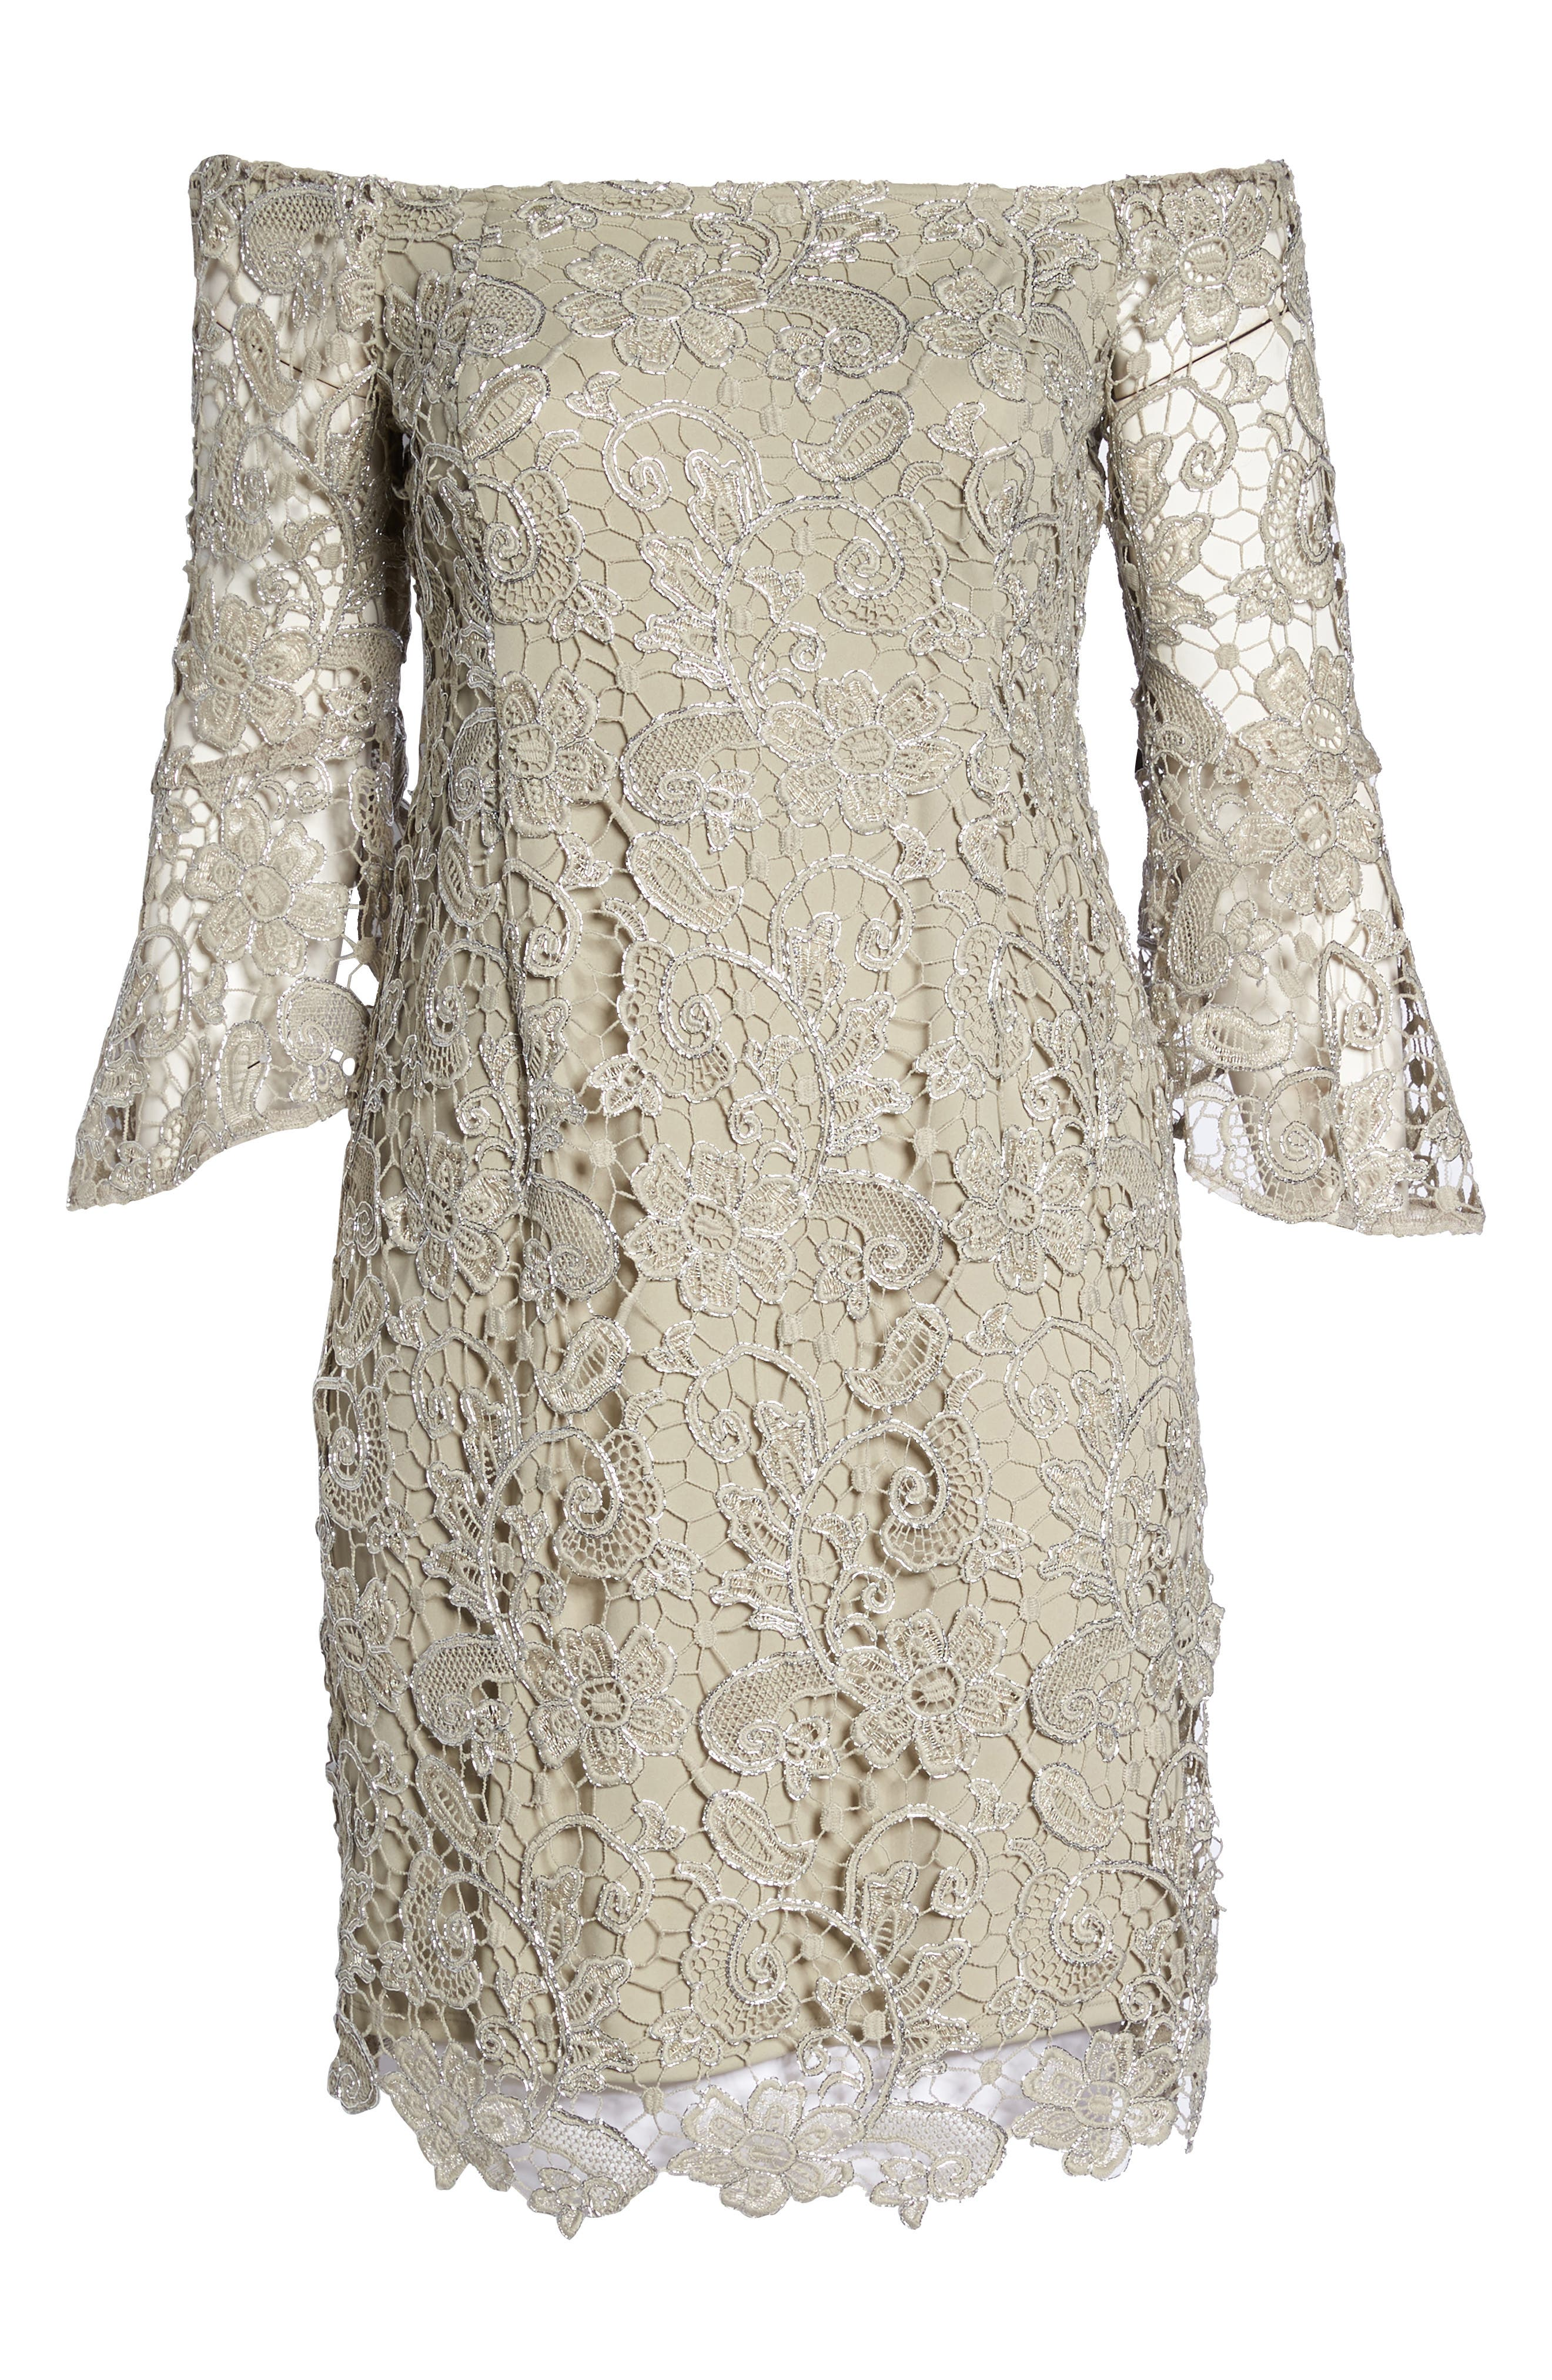 Lace Off the Shoulder Bell Sleeve Dress,                             Alternate thumbnail 6, color,                             250